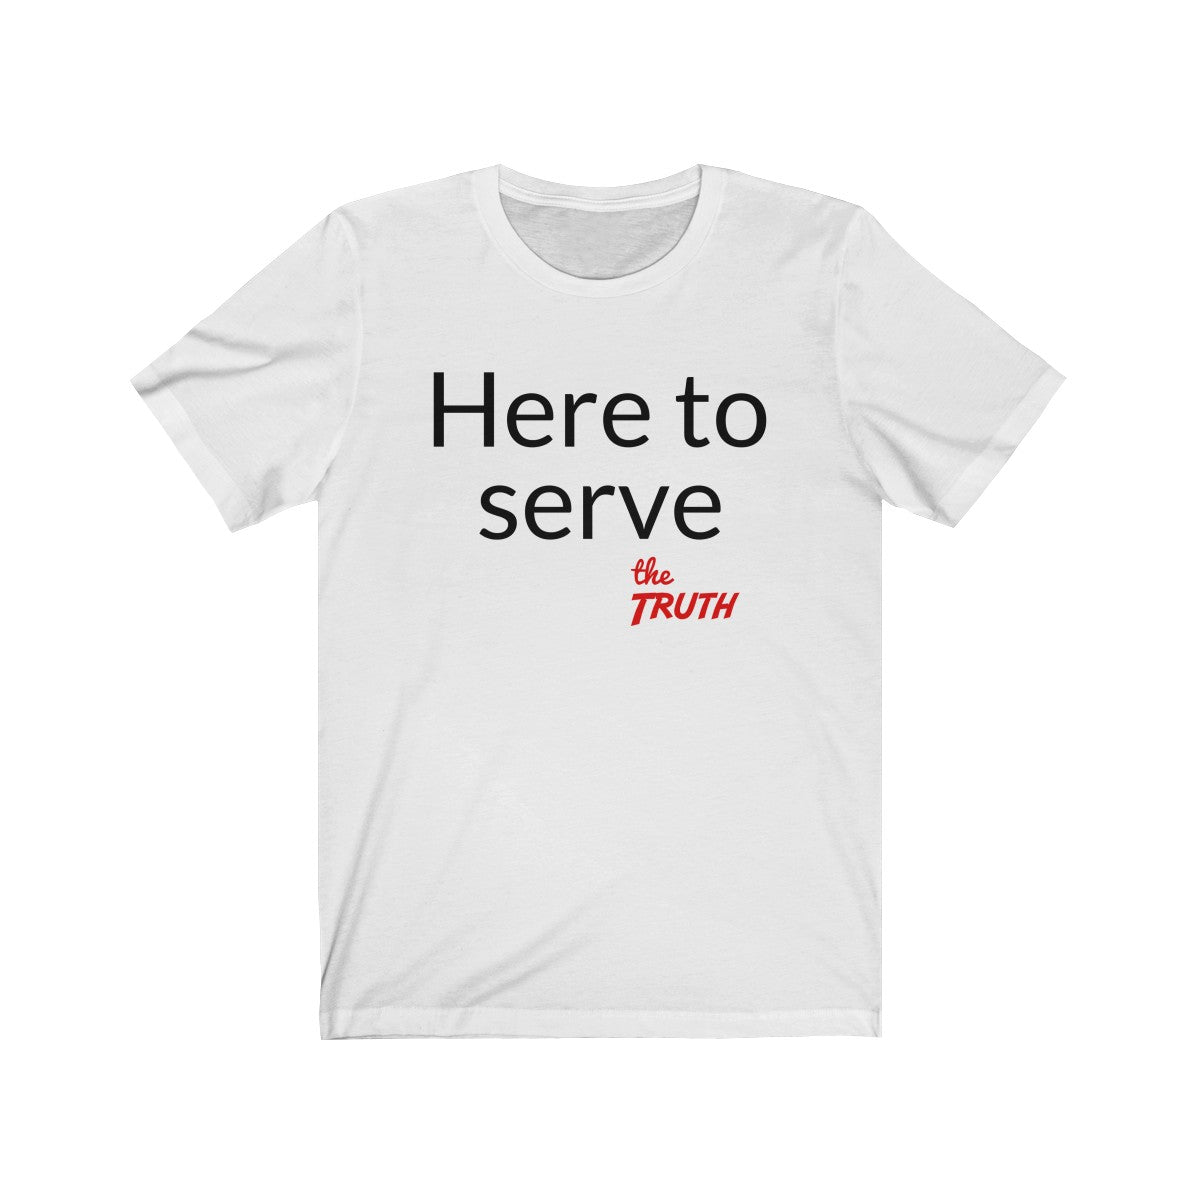 Here to serve the Truth. Christian T-Shirt to declare why you (and the Truth) are here